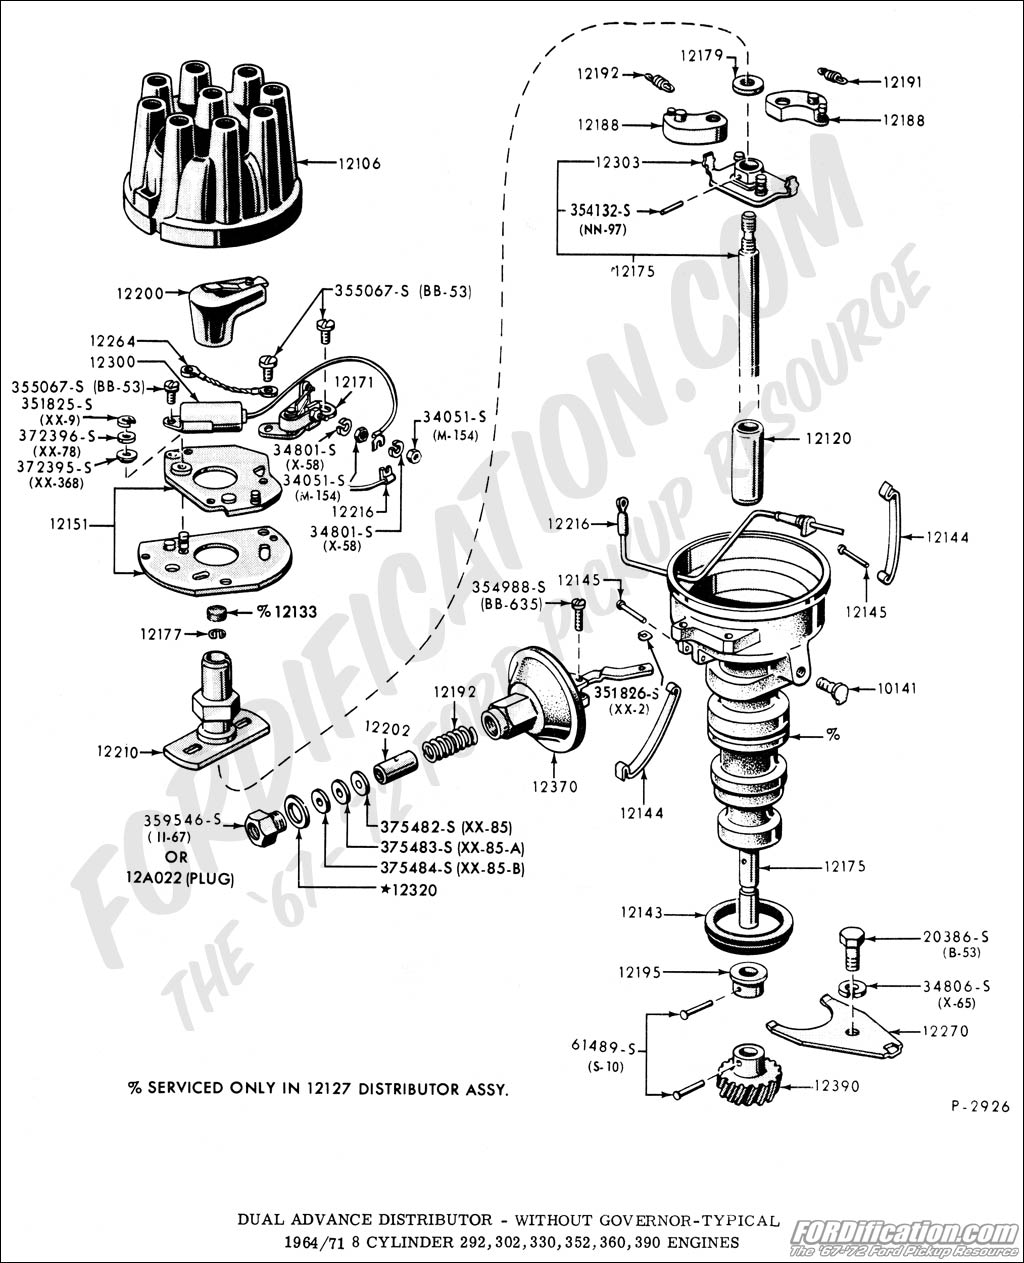 Ford Bronco 302 V8 Engine Diagram Wiring Library 1966 Harness Truck Technical Drawings And Schematics Section I Electrical